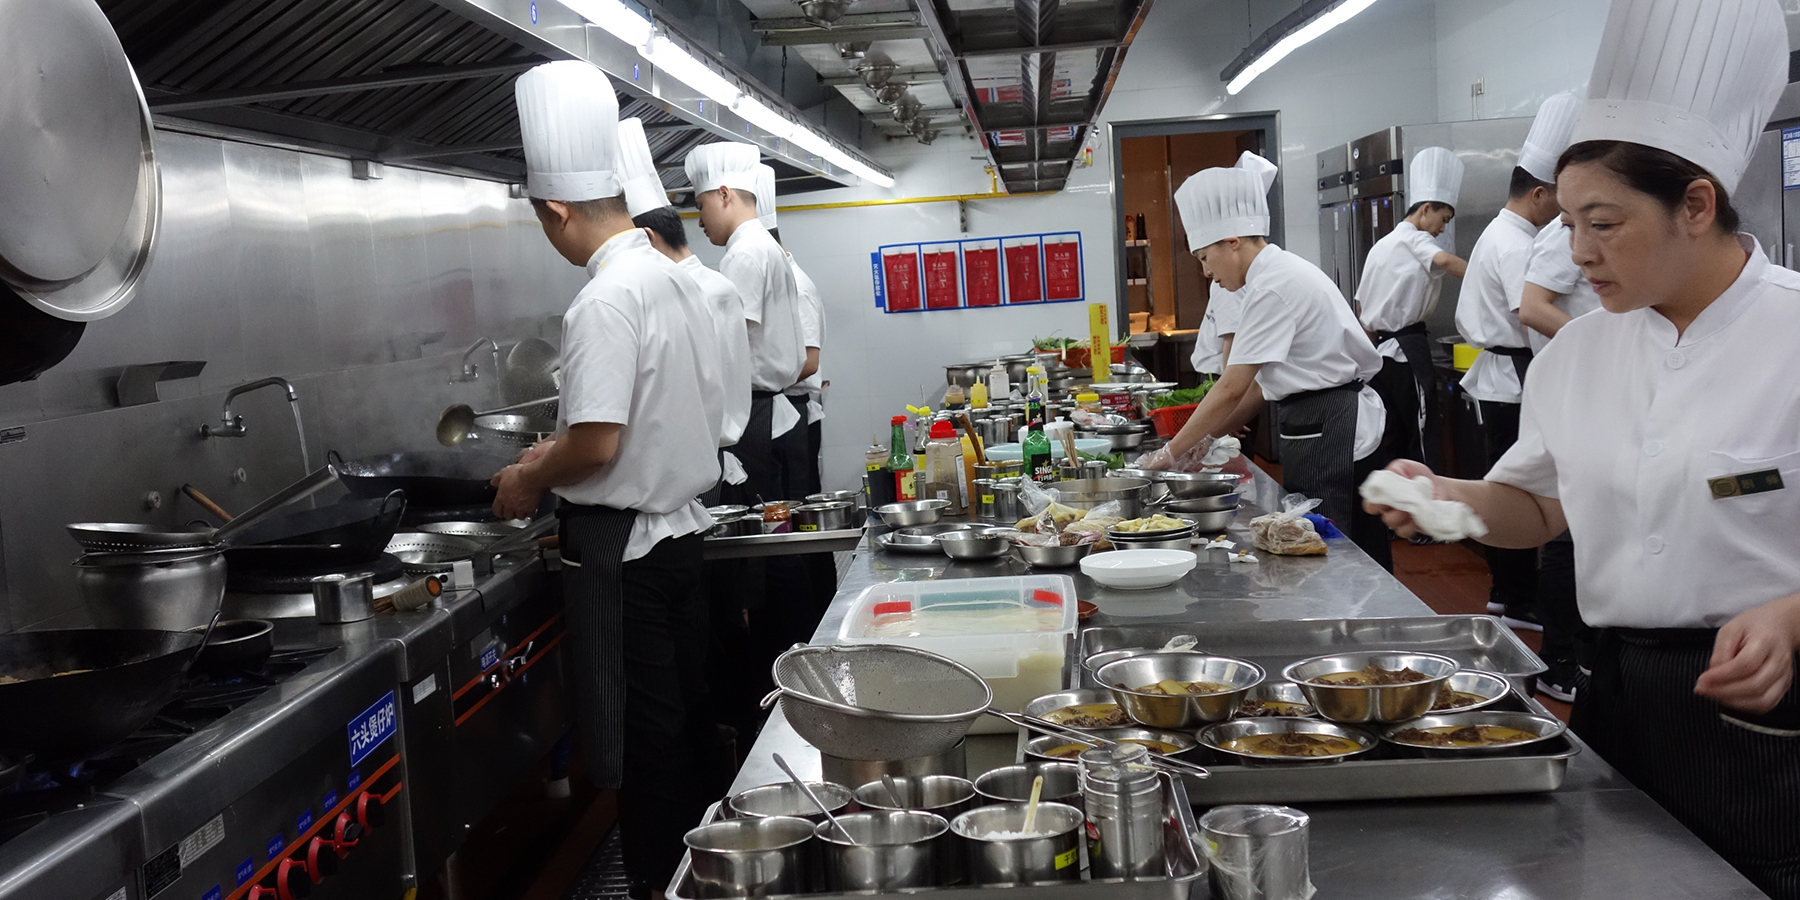 The kitchen at one of the Zhong family restaurants in Wuhan, China, on June 21.